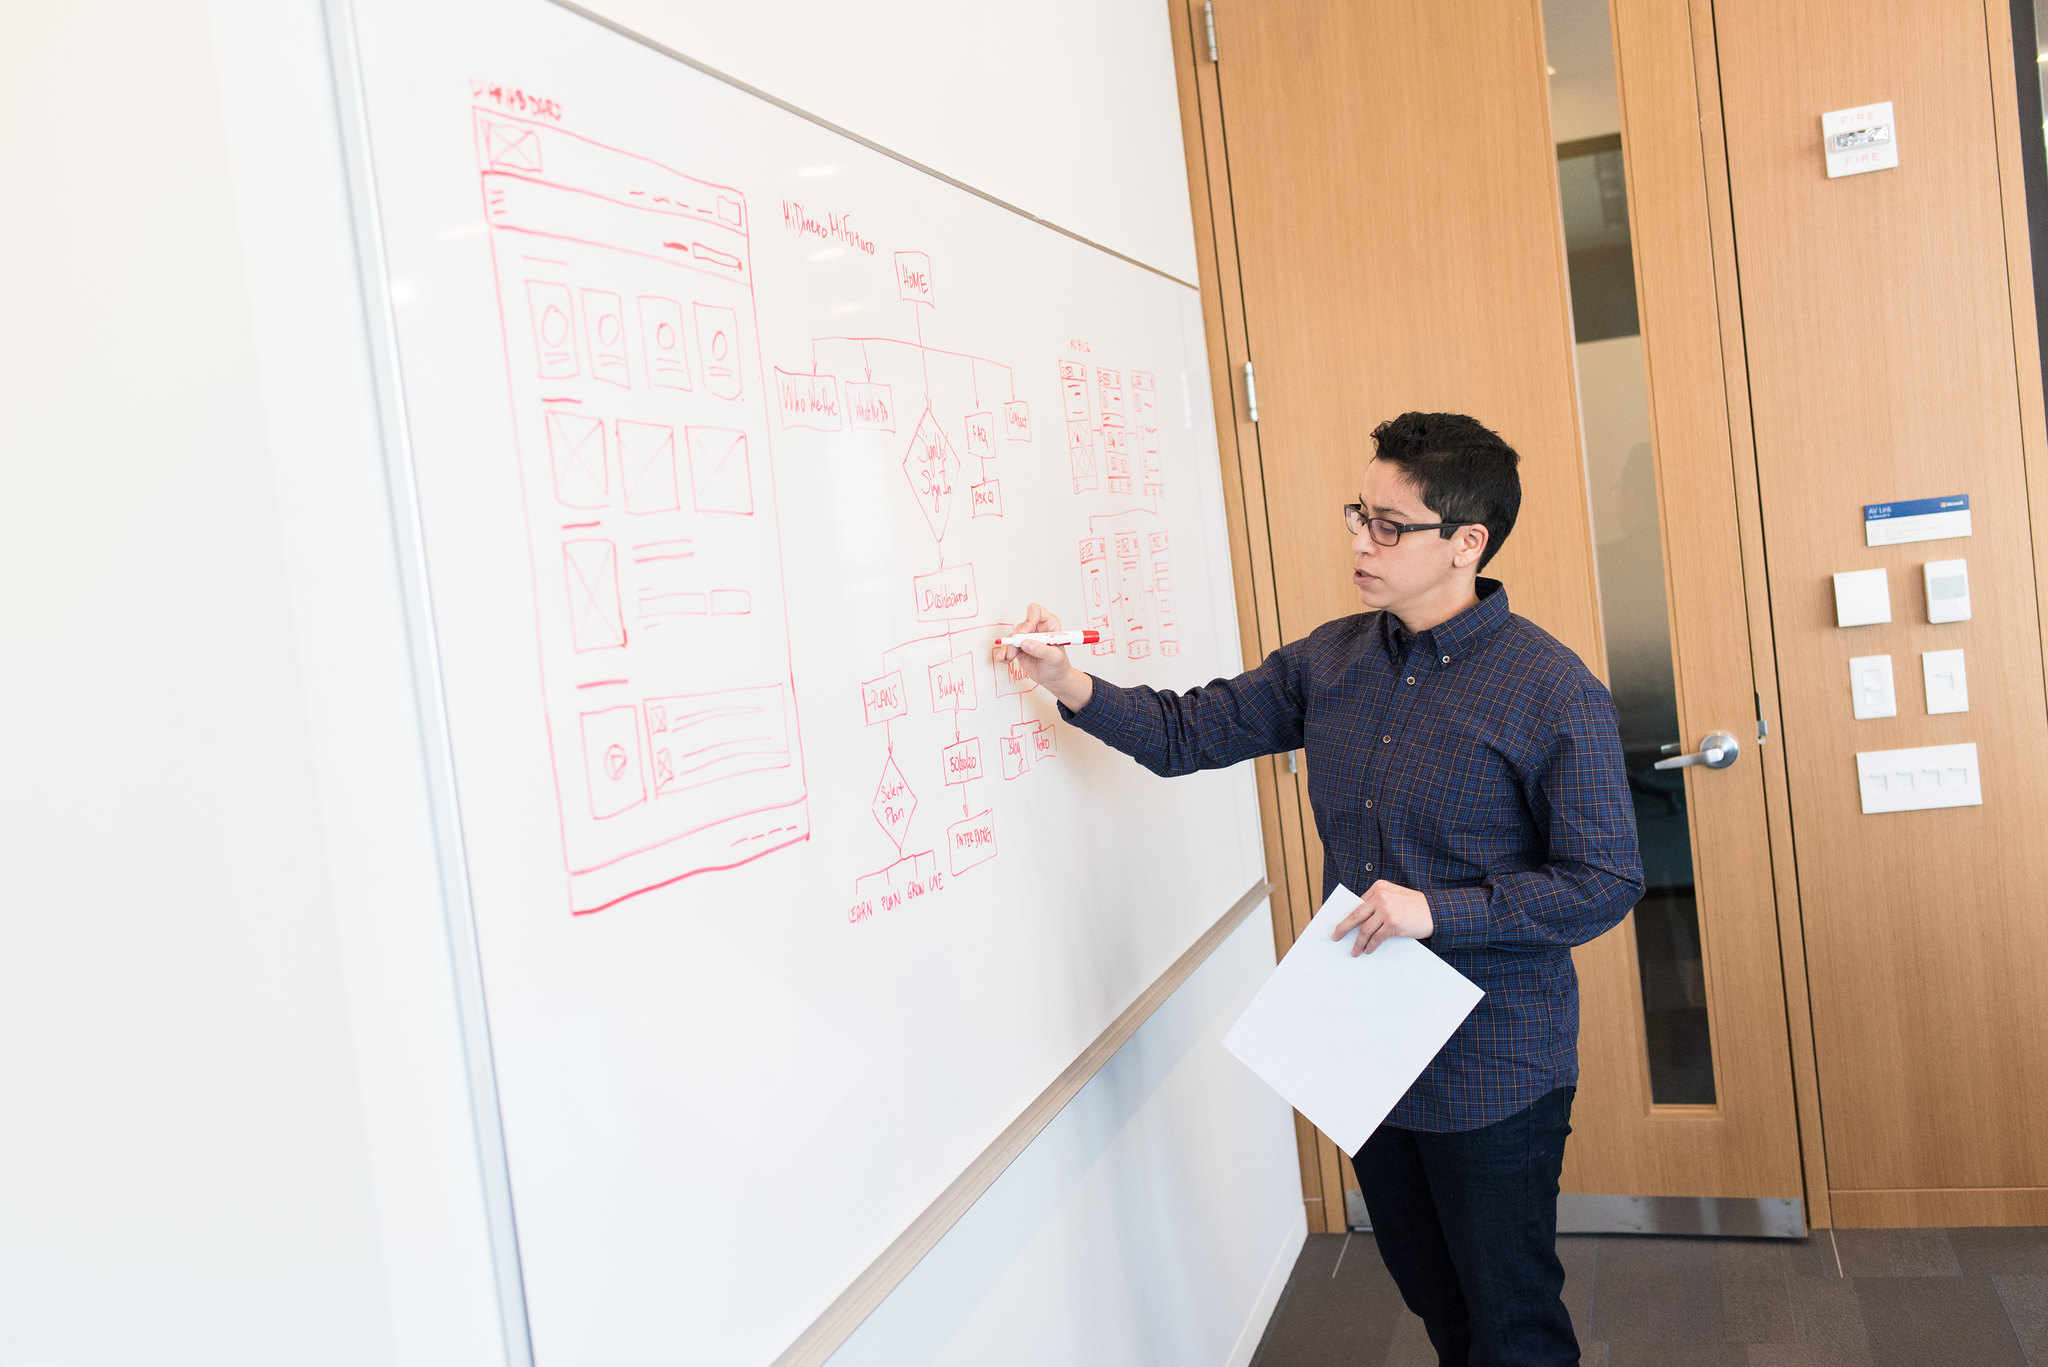 An instructor draws a complex diagram on the whiteboard.